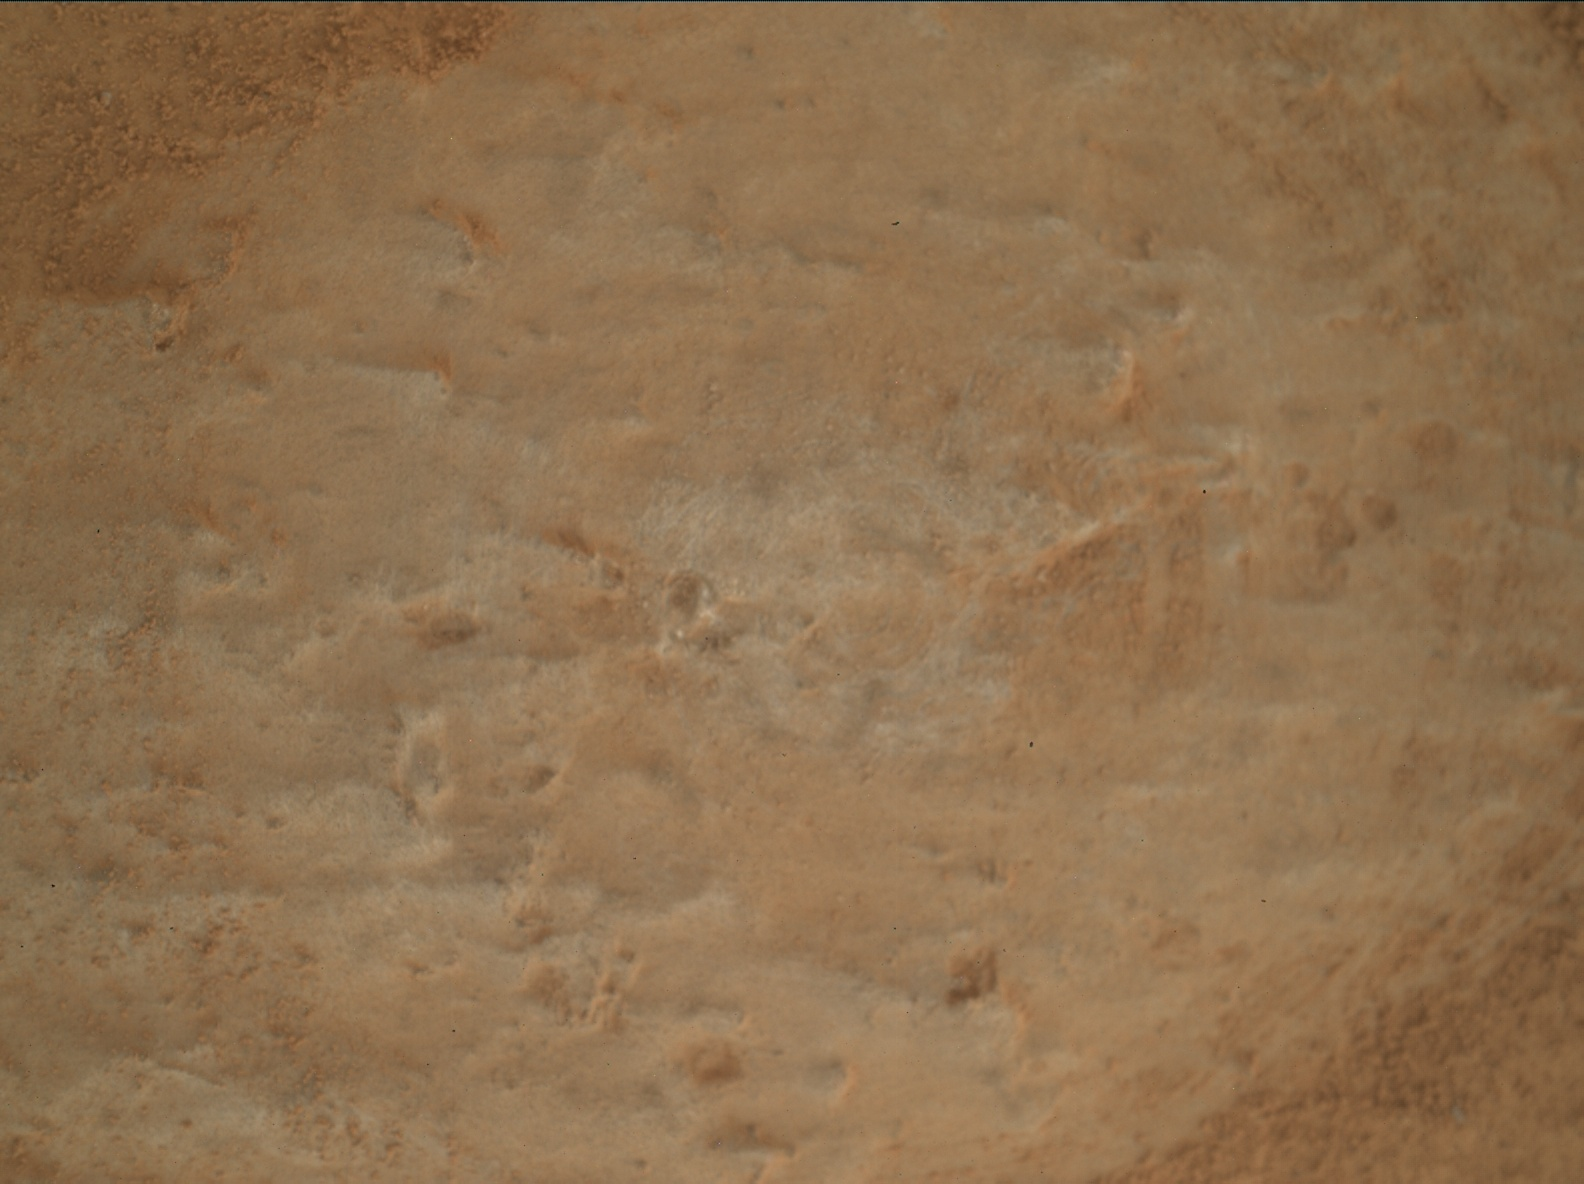 Nasa's Mars rover Curiosity acquired this image using its Mars Hand Lens Imager (MAHLI) on Sol 2665